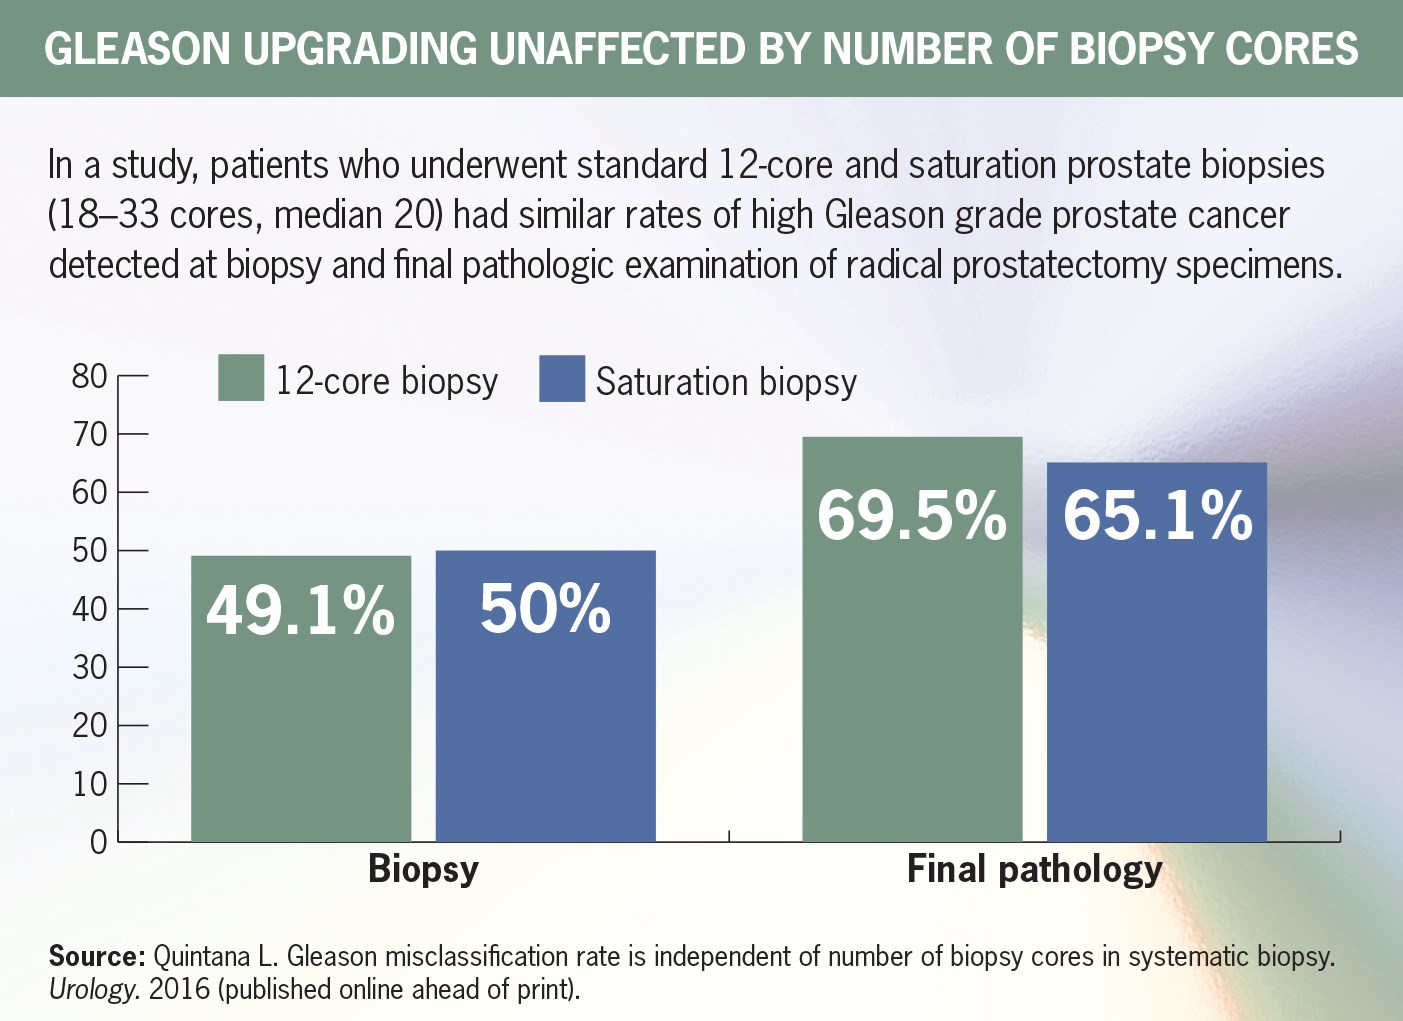 Detection of high Gleason grade tumors is not significantly improved versus standard 12-core biopsy.